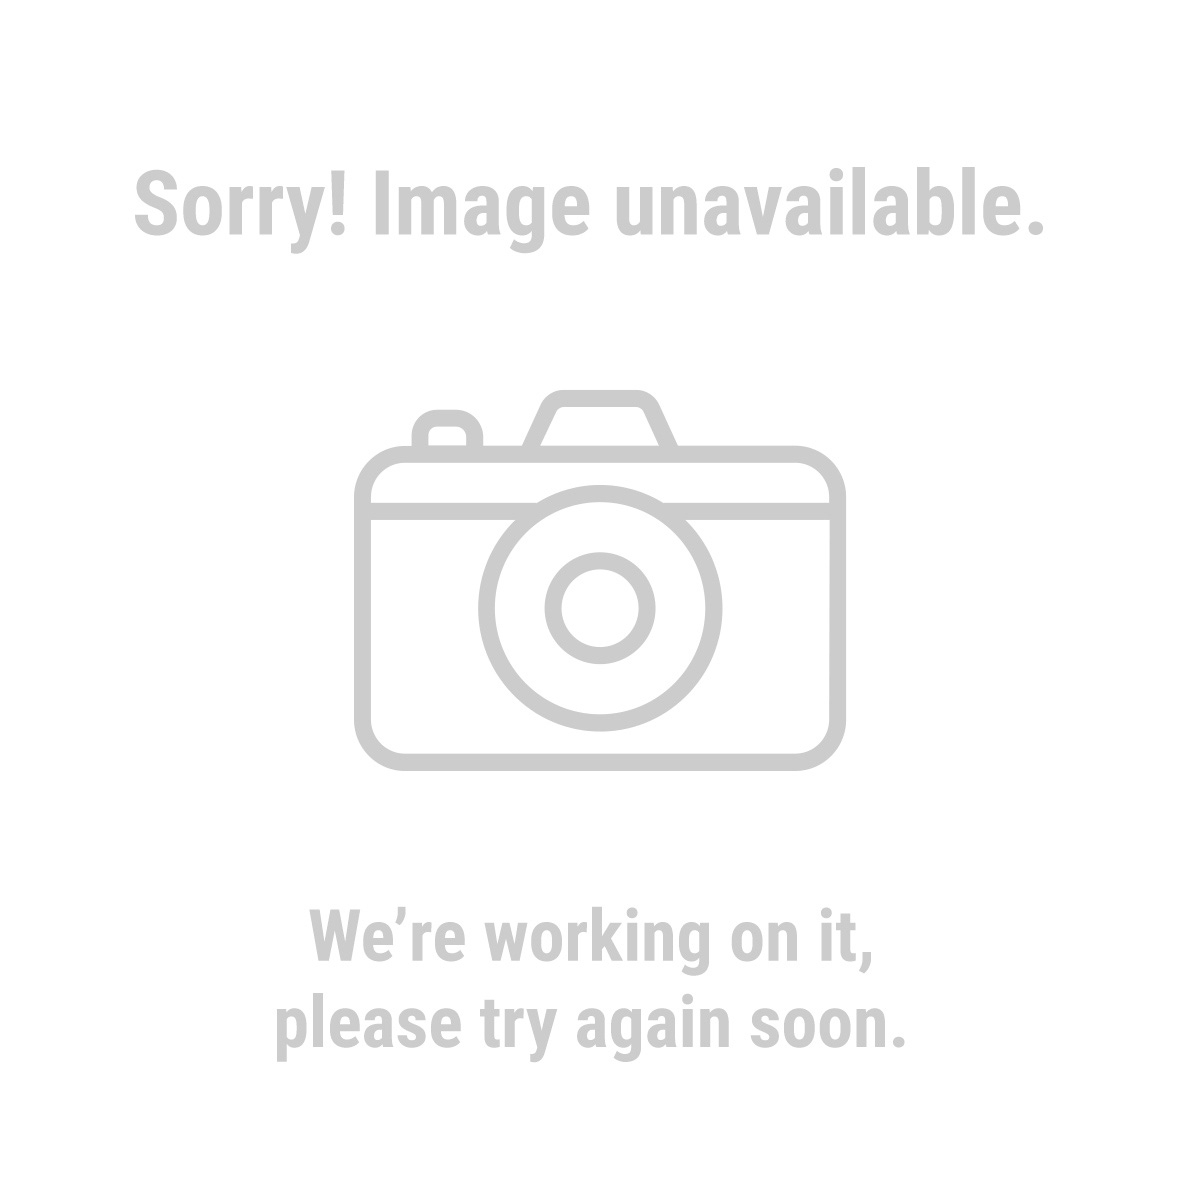 93307 16 Oz. Powder Coat Paint, White